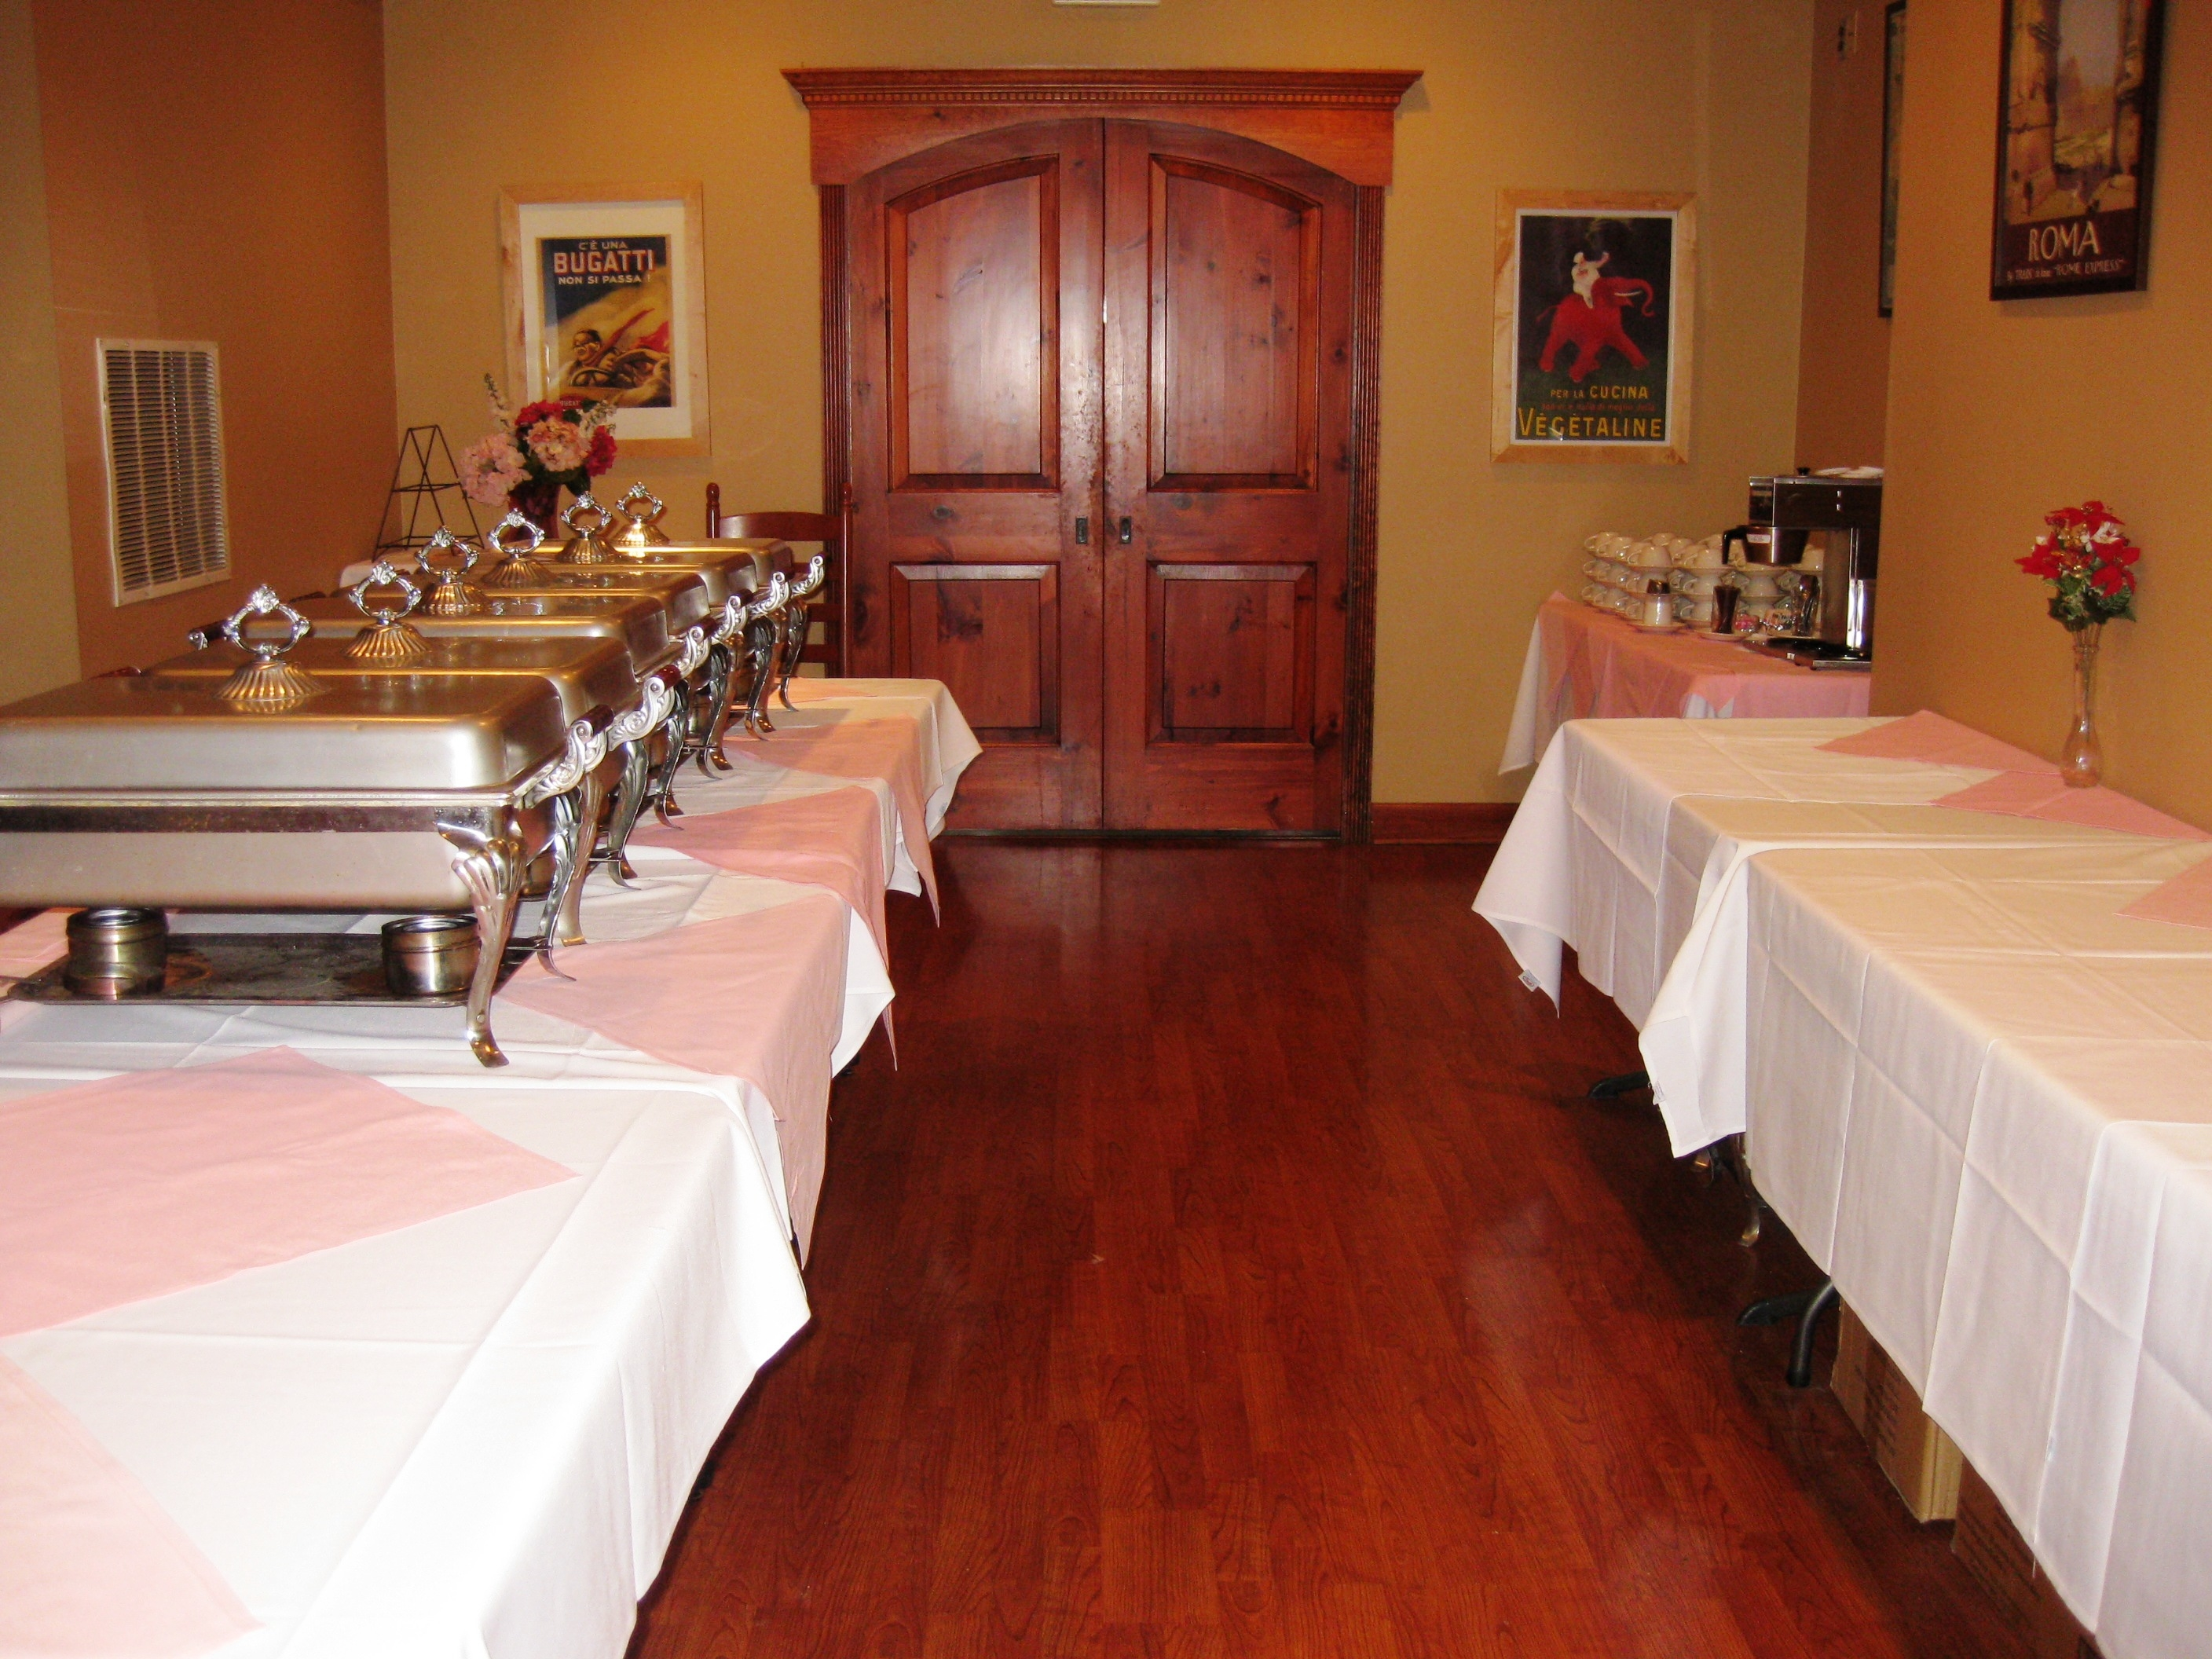 Our buffet station are waiting for you